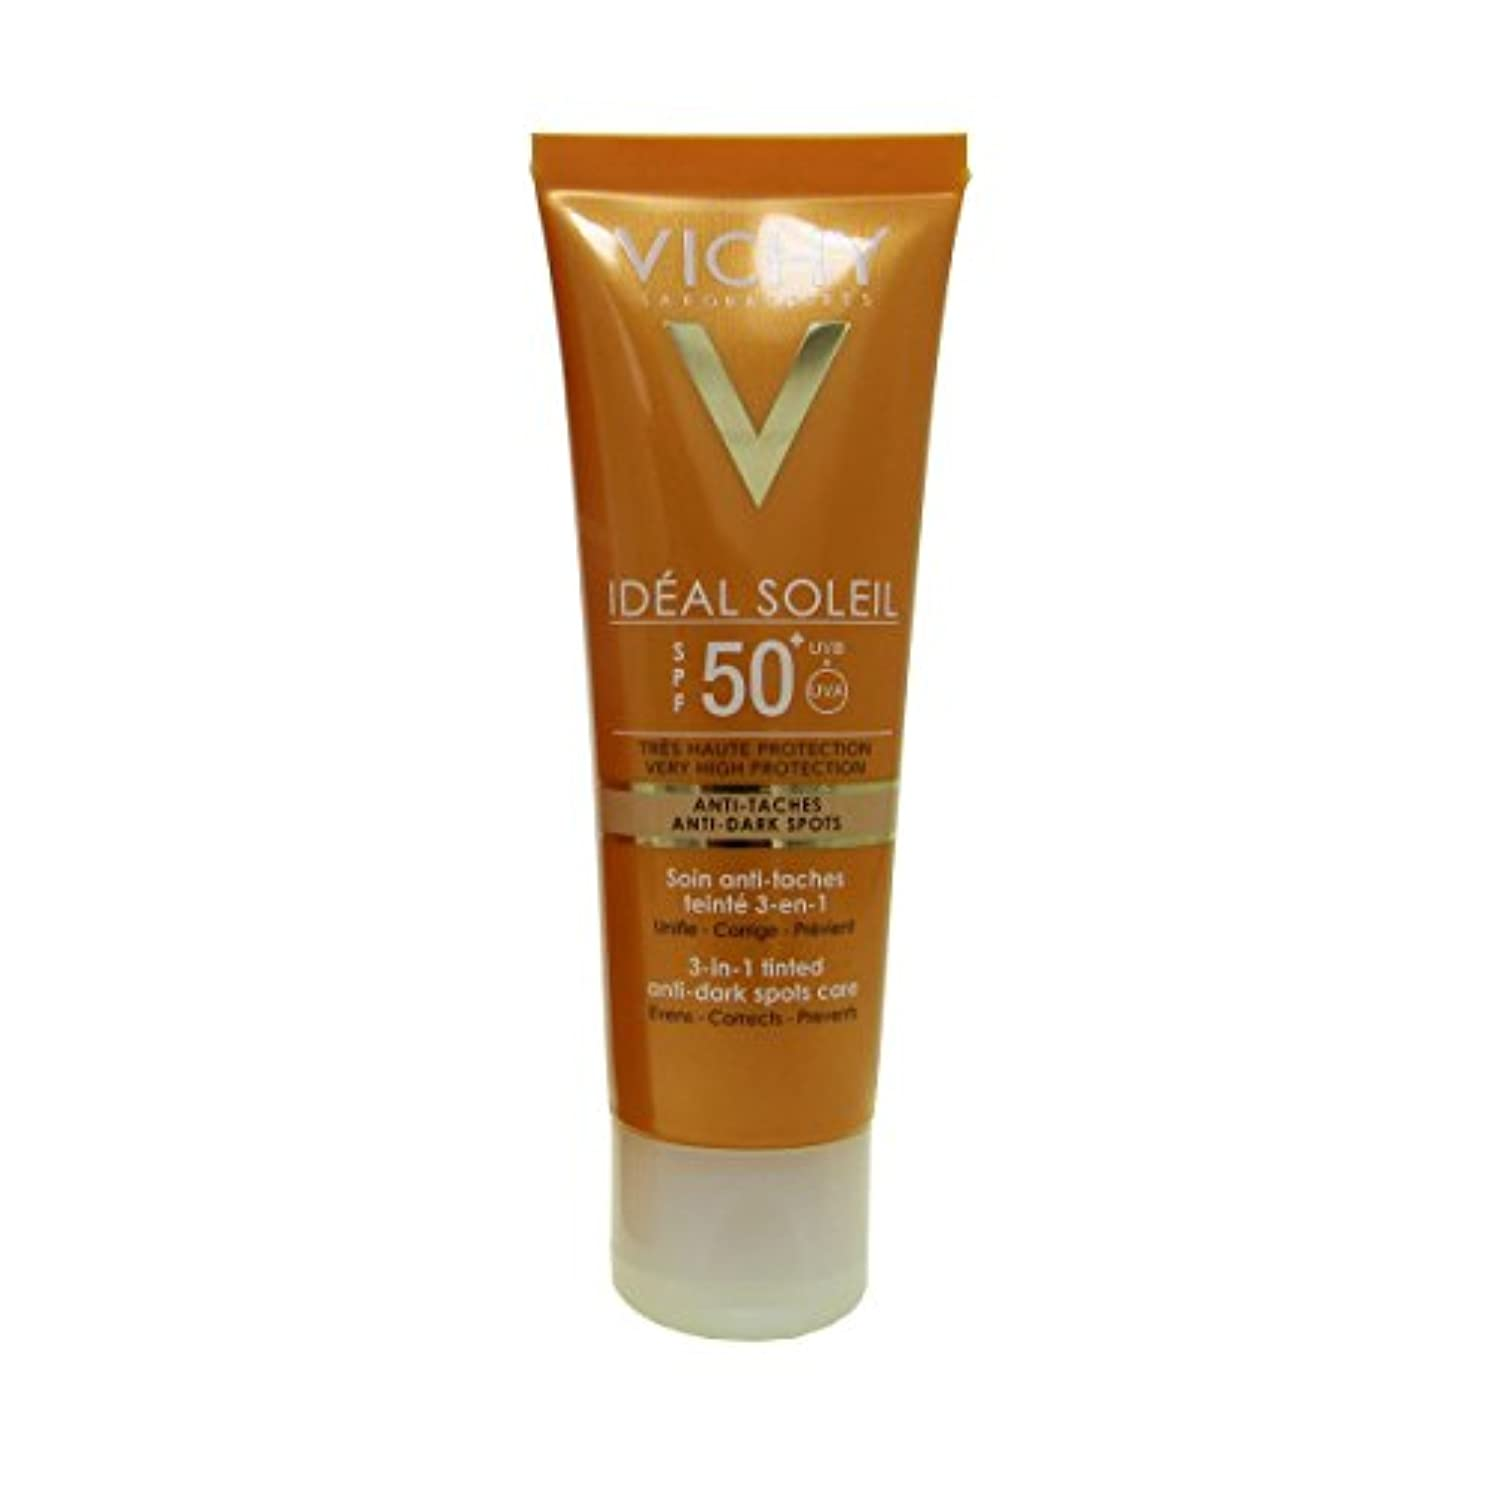 ジャンプするヒープペパーミントVichy Capital Soleil Ideal Soleil 3-in-1 Tinted Anti-dark Spots Care Spf50 50ml [並行輸入品]